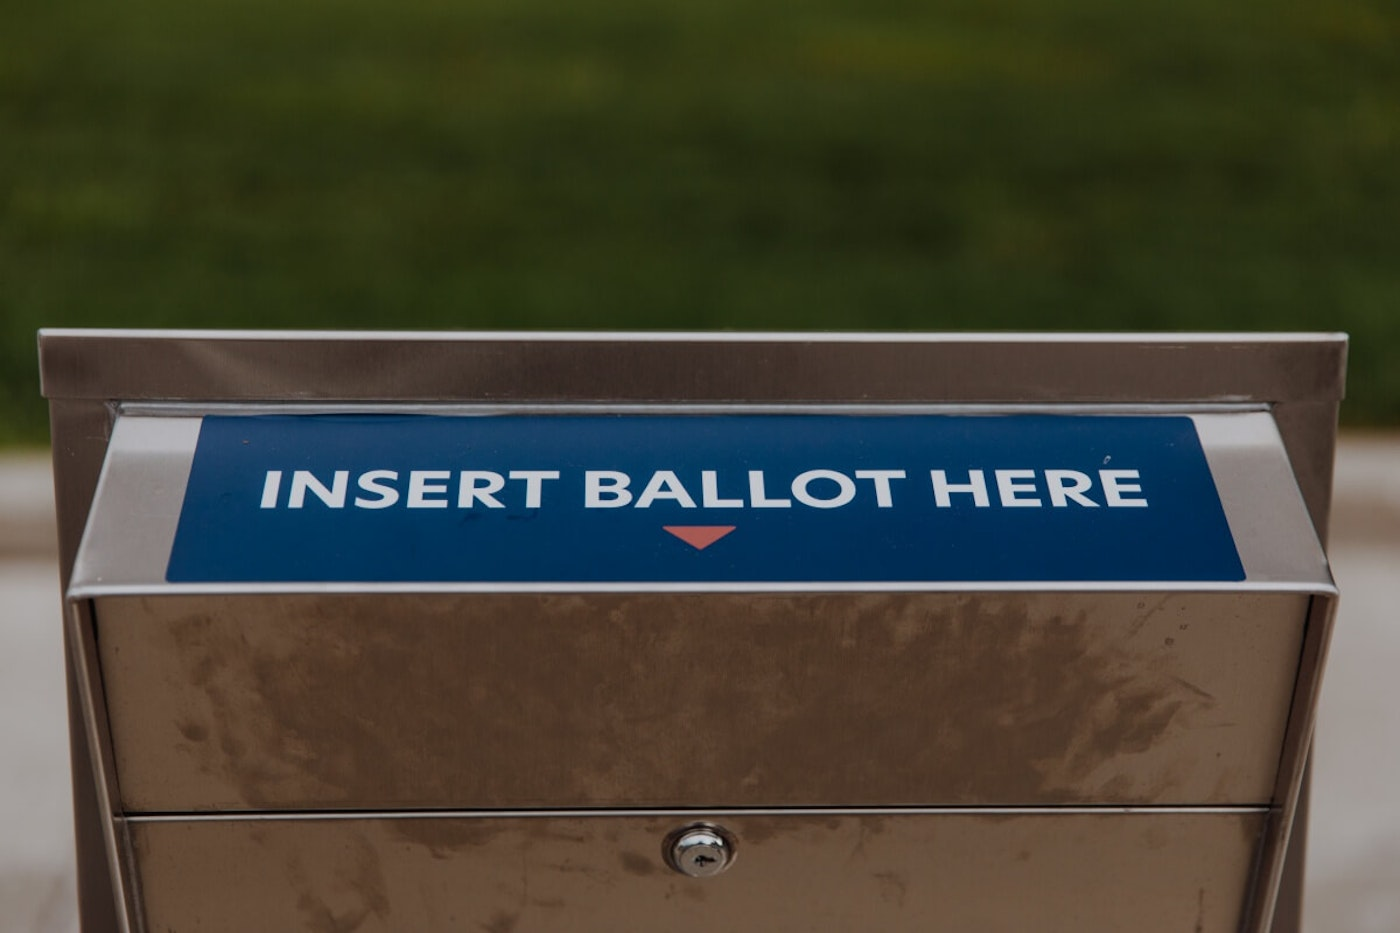 Registered voters in Michigan can cast ballots in person, by mail, or by absent voter ballot.